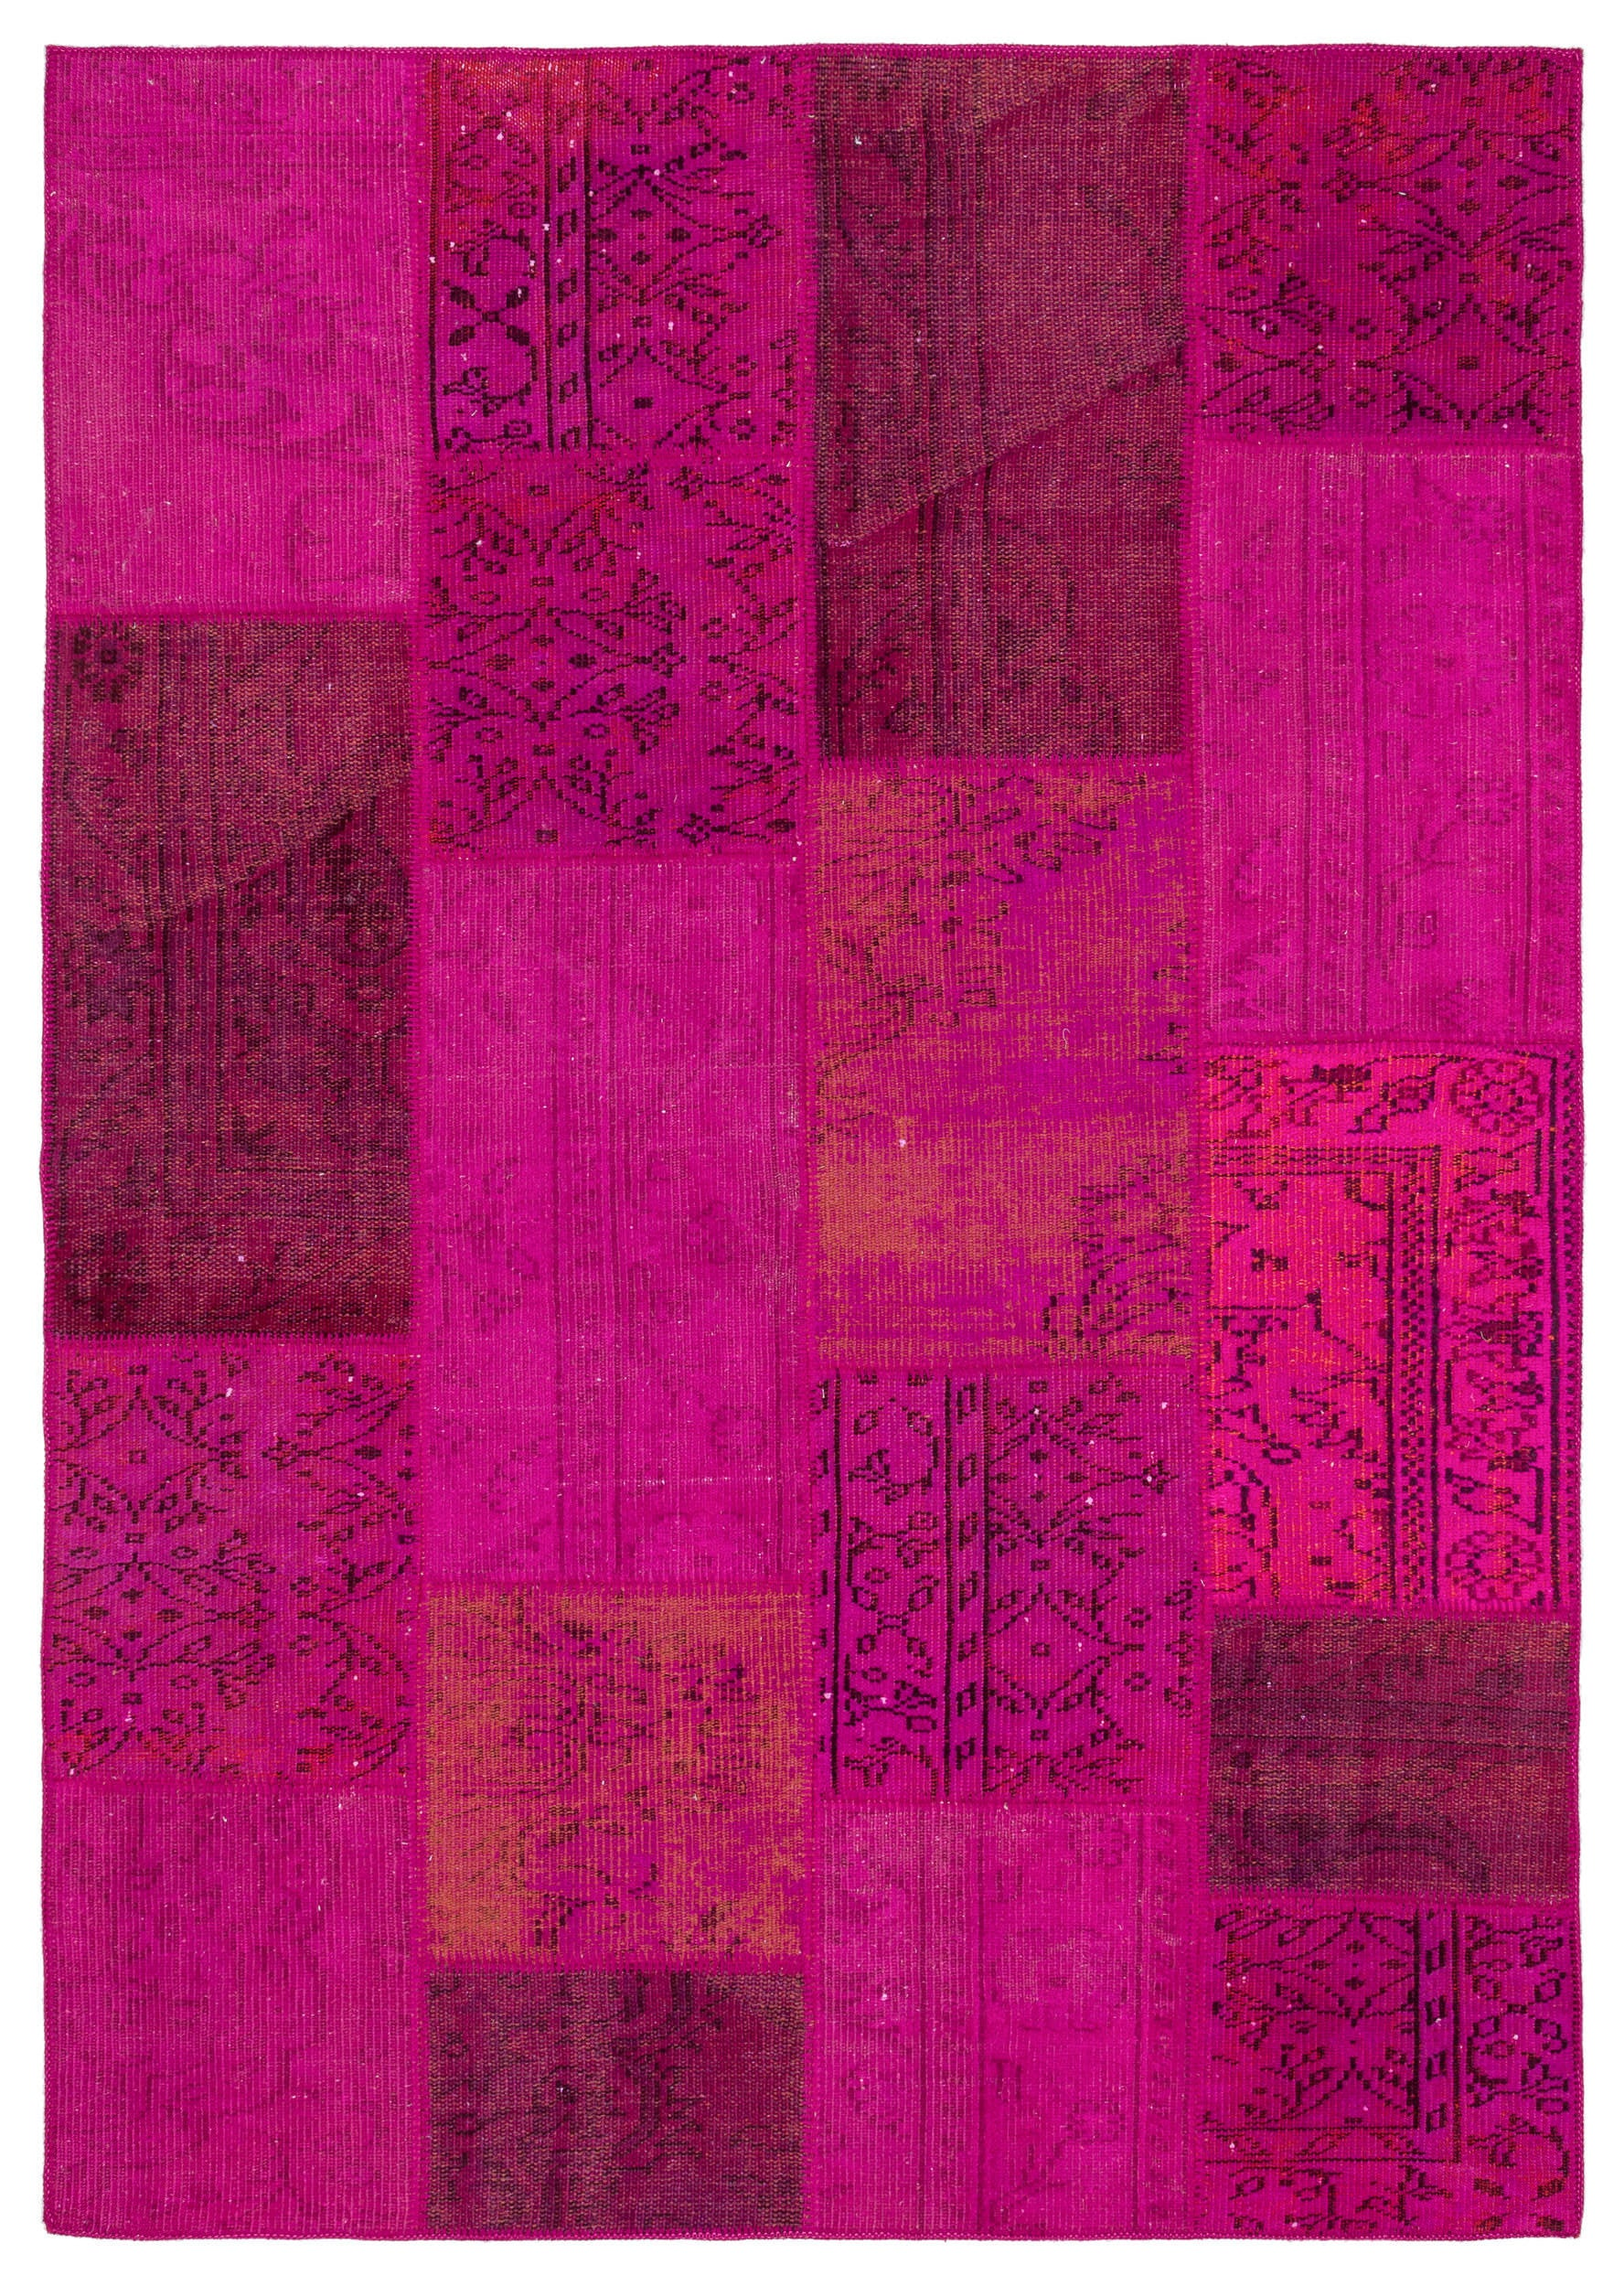 Fuchsia Over Dyed Patchwork Unique Rug 5'4'' x 7'7'' ft 162 x 230 cm